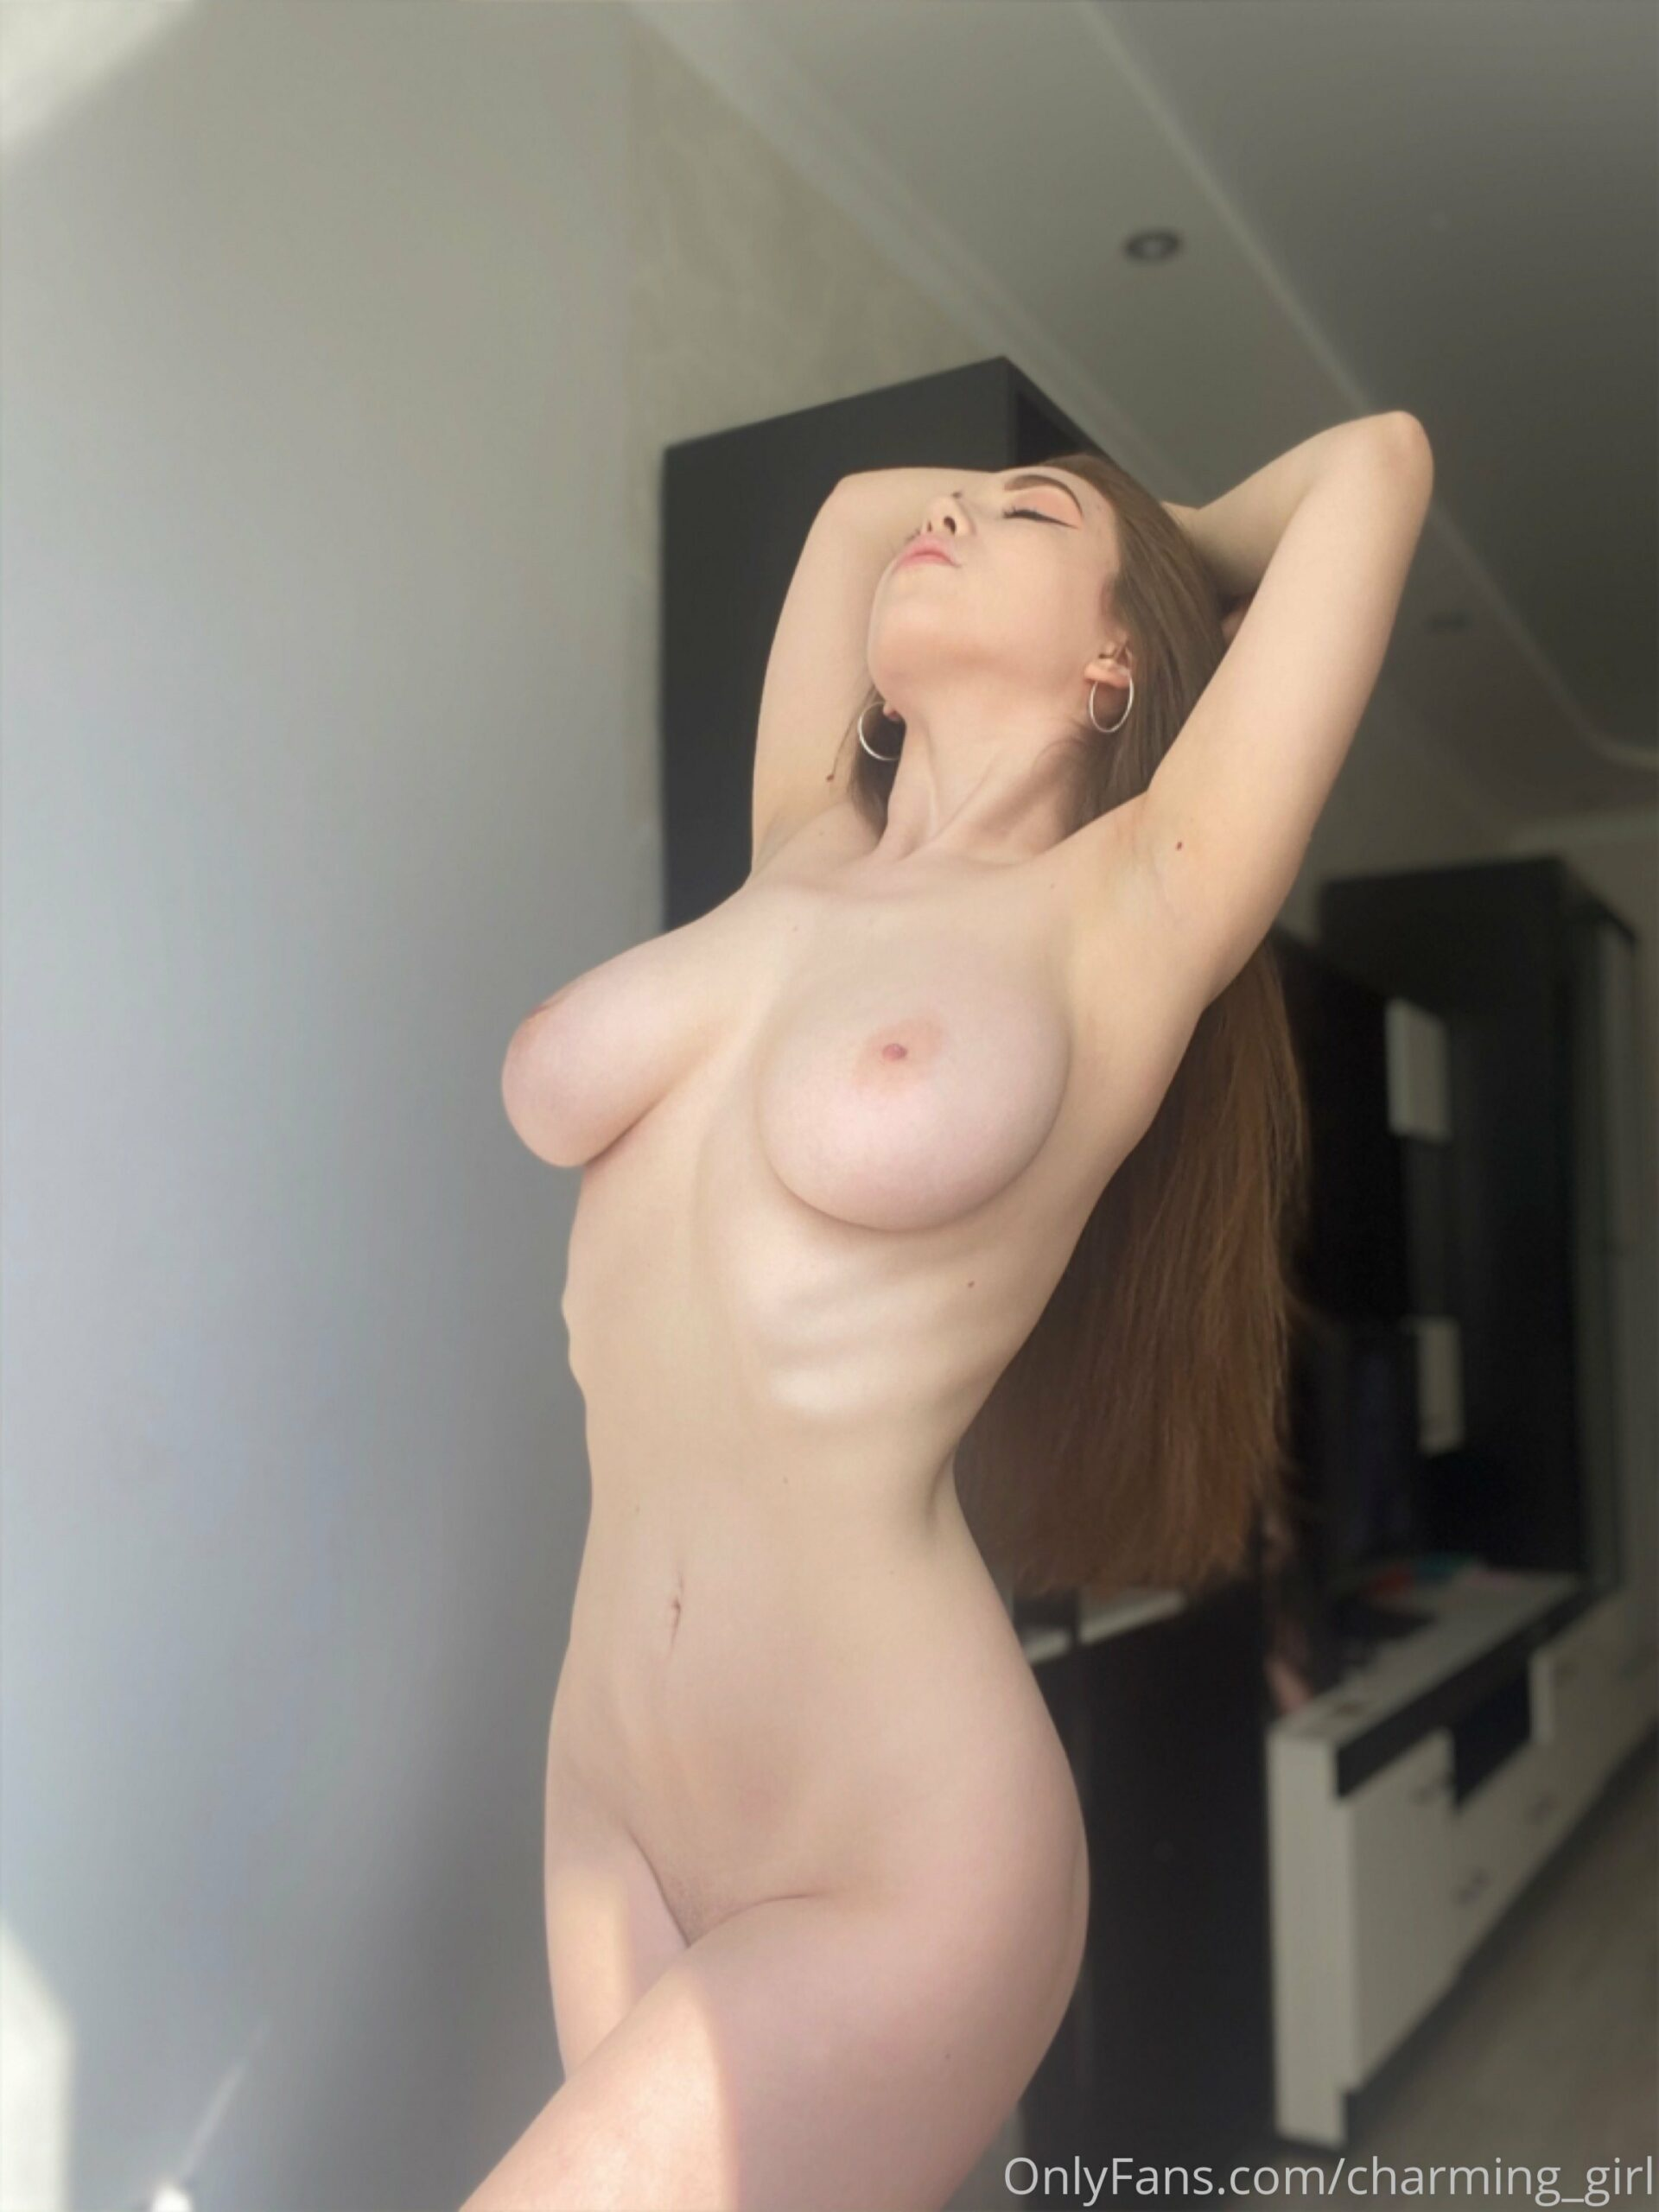 Charming girl Porn OnlyFans Leaked Nudes 52